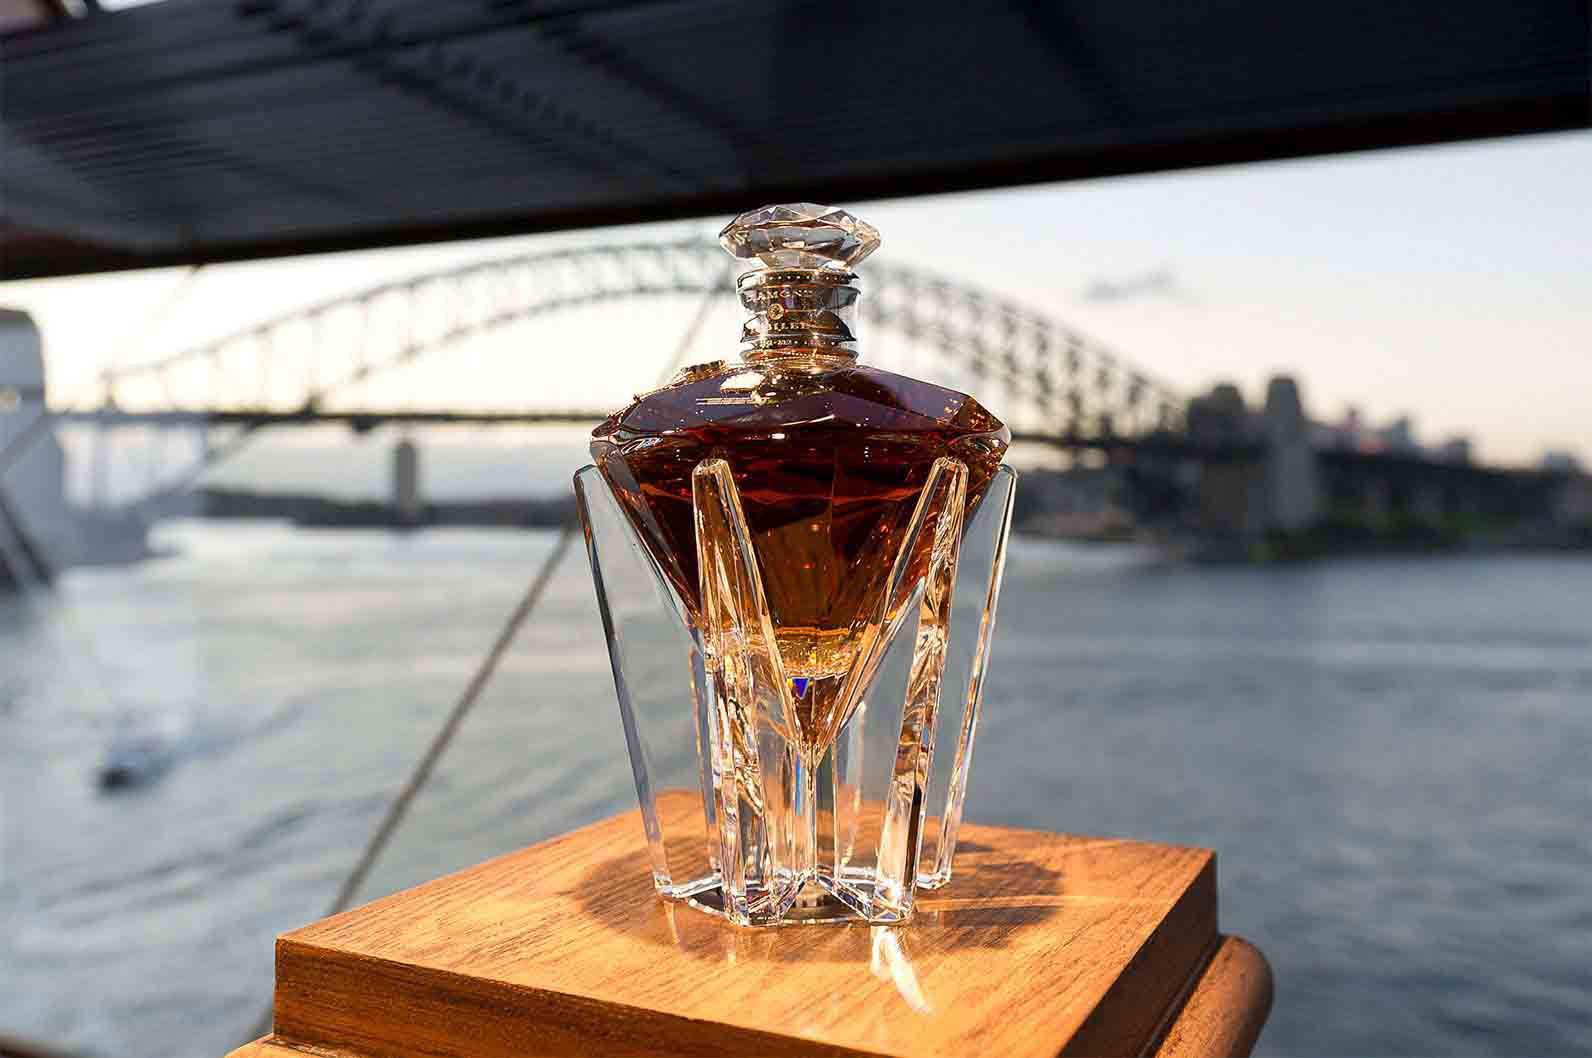 Bottle of John Walker & Sons Diamond Jubilee whisky with Syndey Harbour bridge in the background